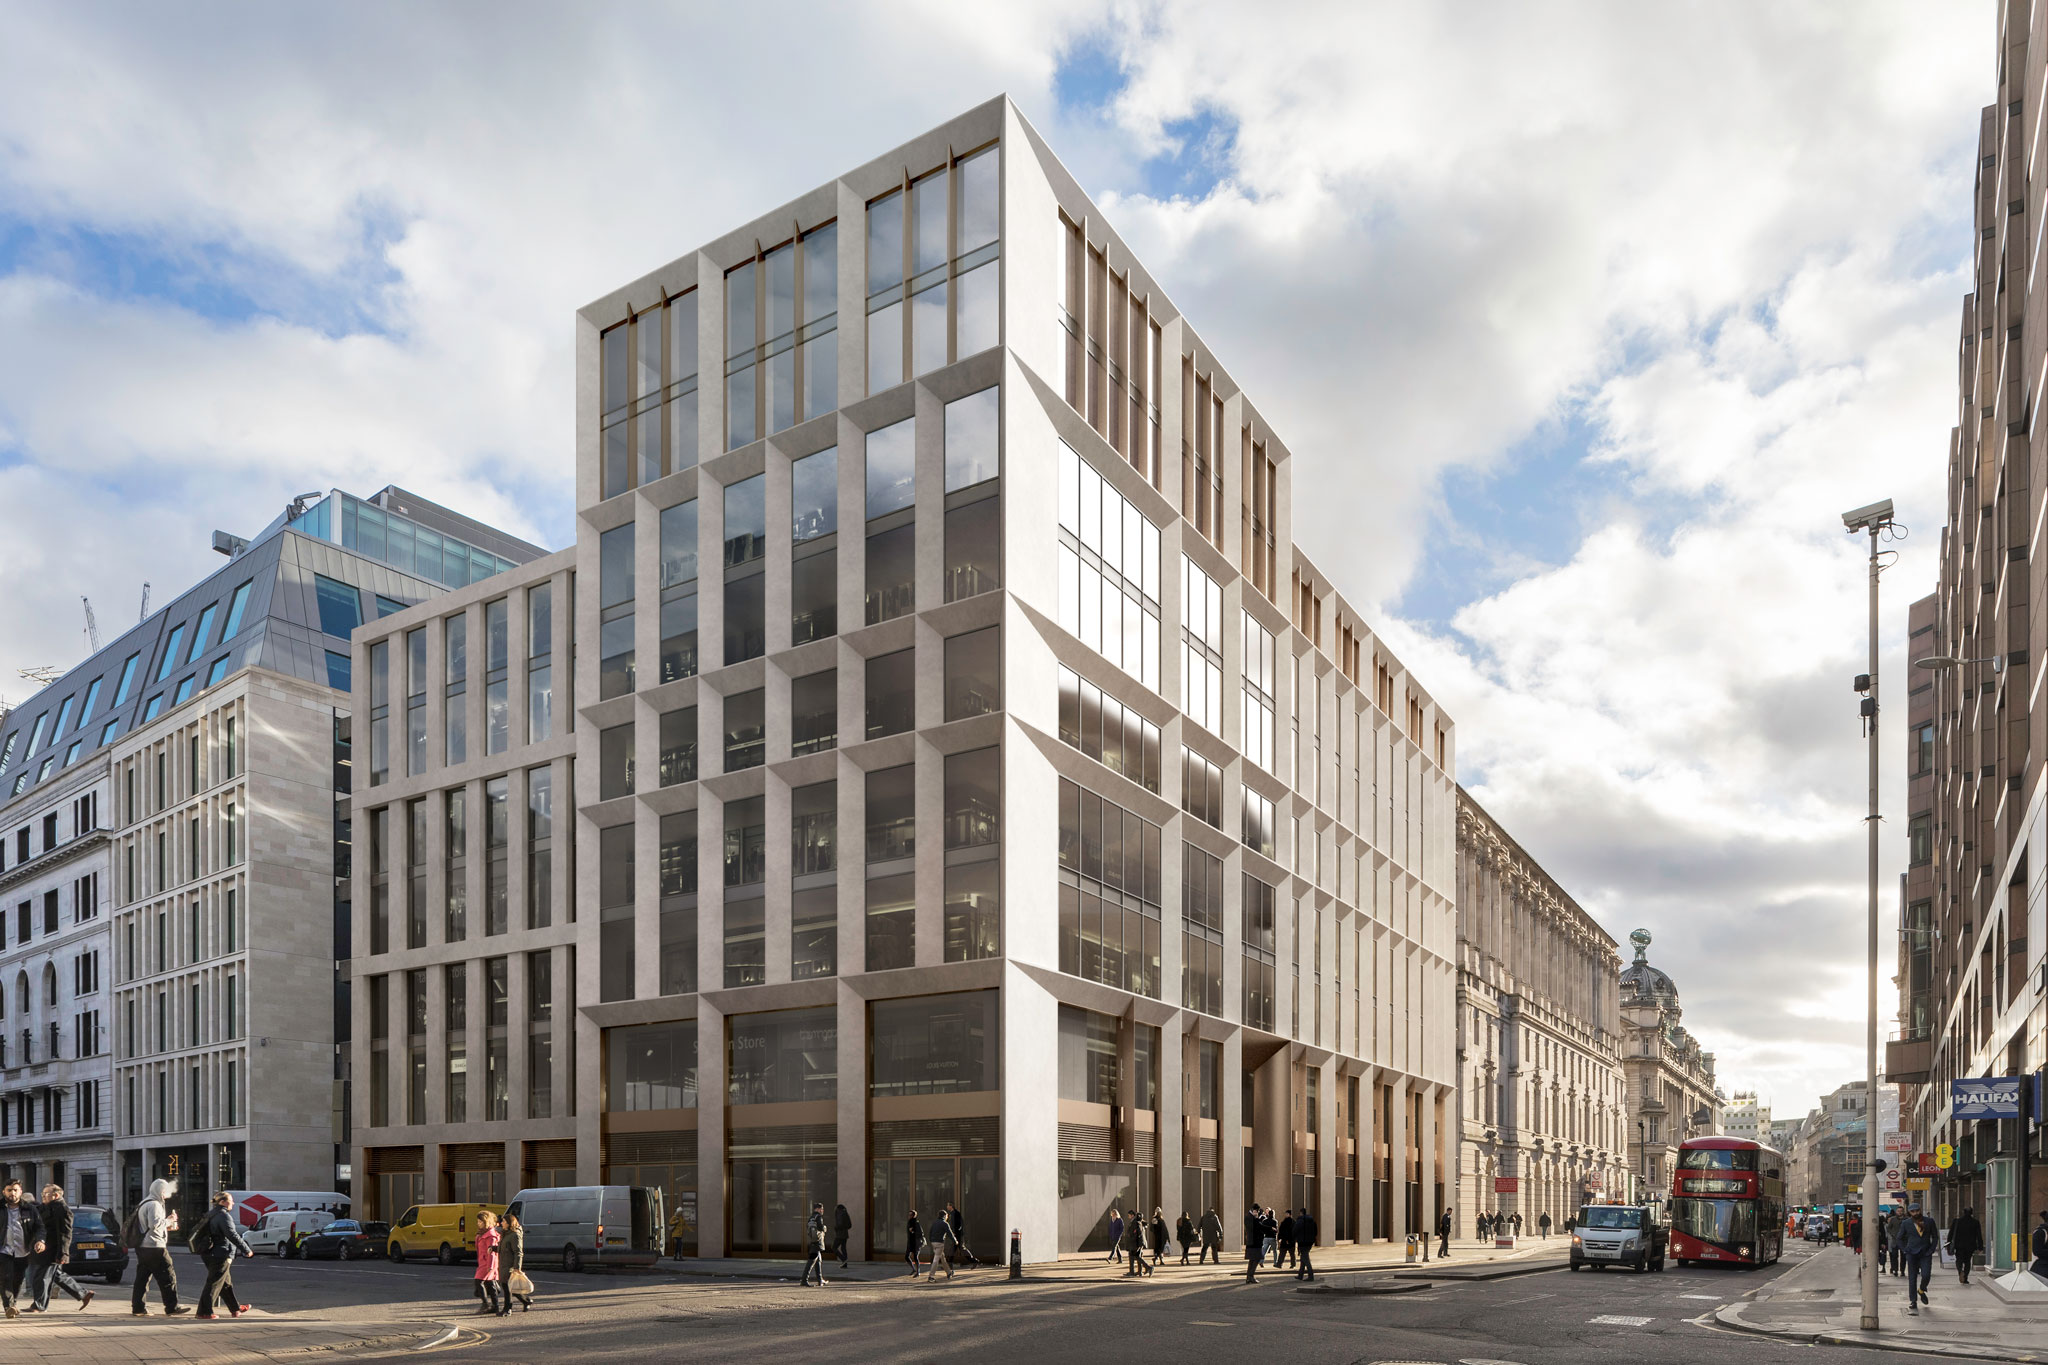 120 Moorgate by Darling Associates